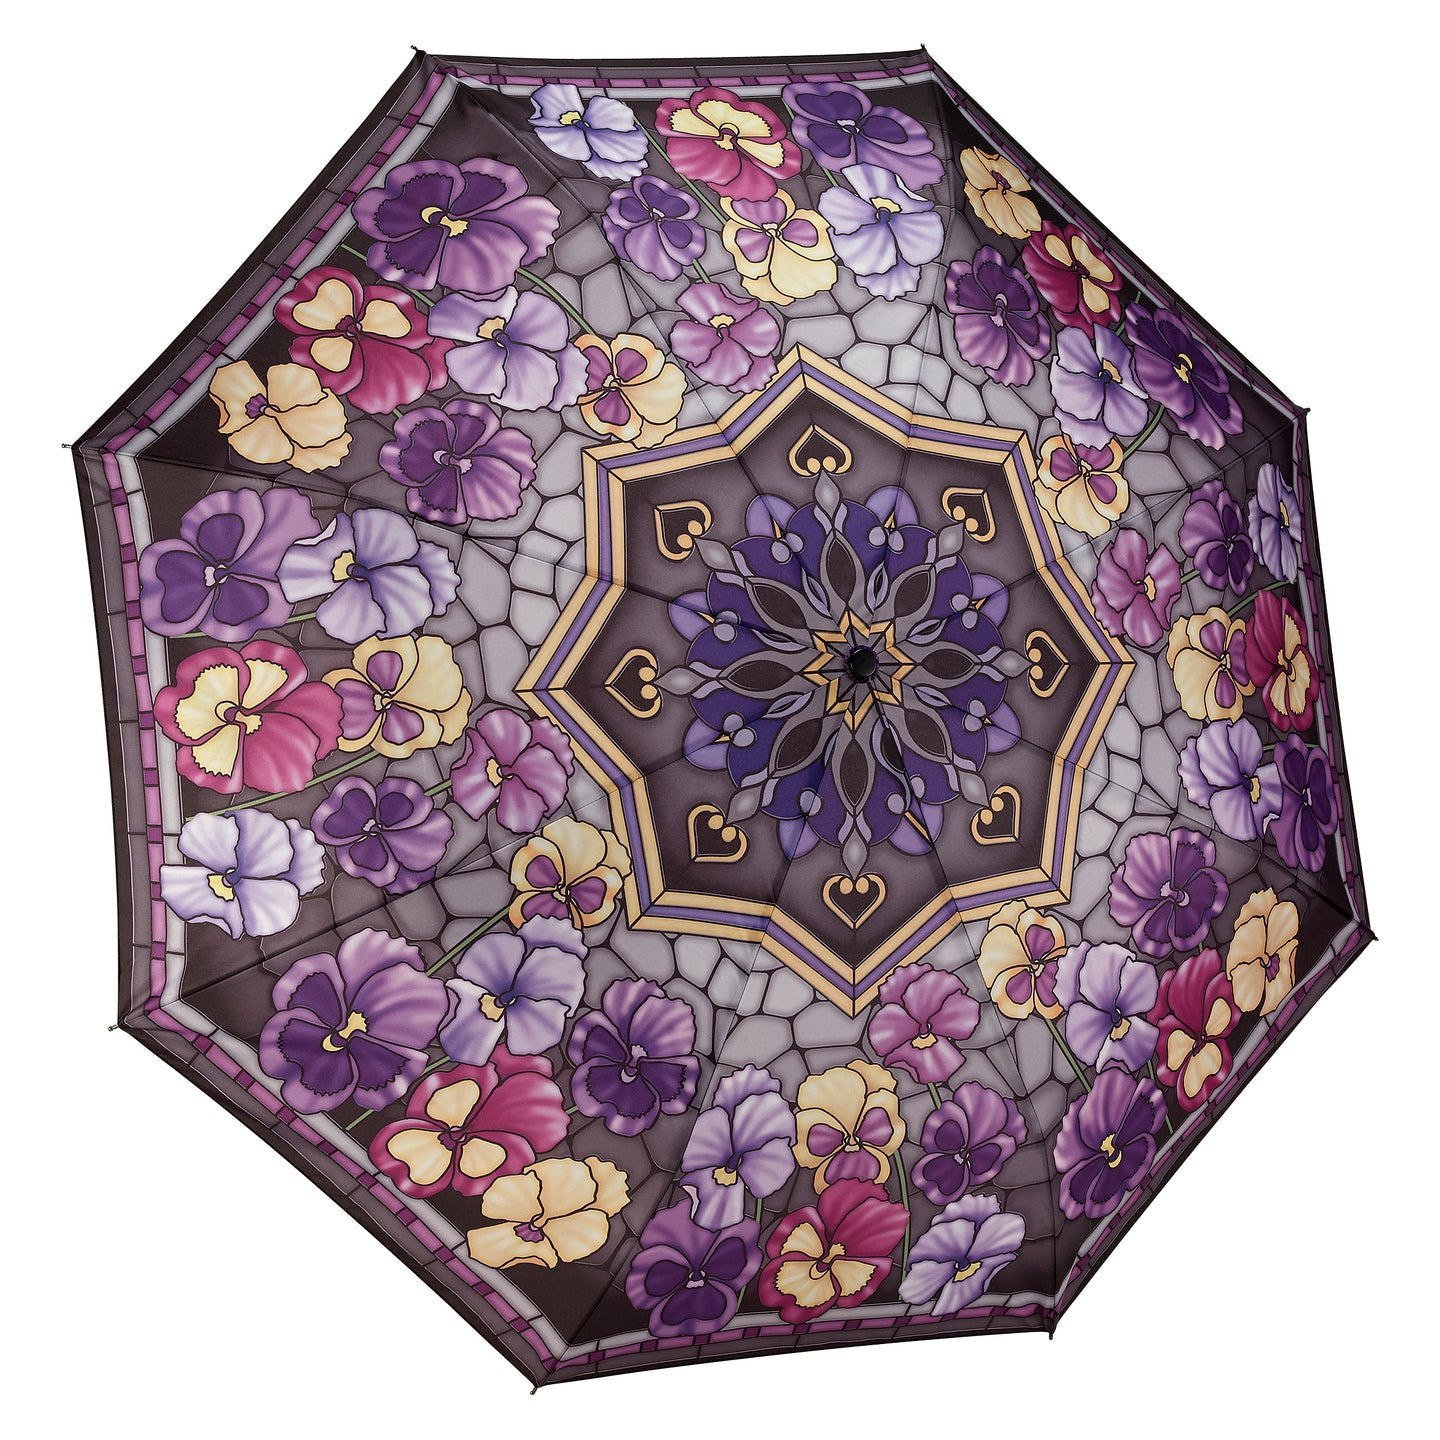 Stained Glass Pansies Umbrella